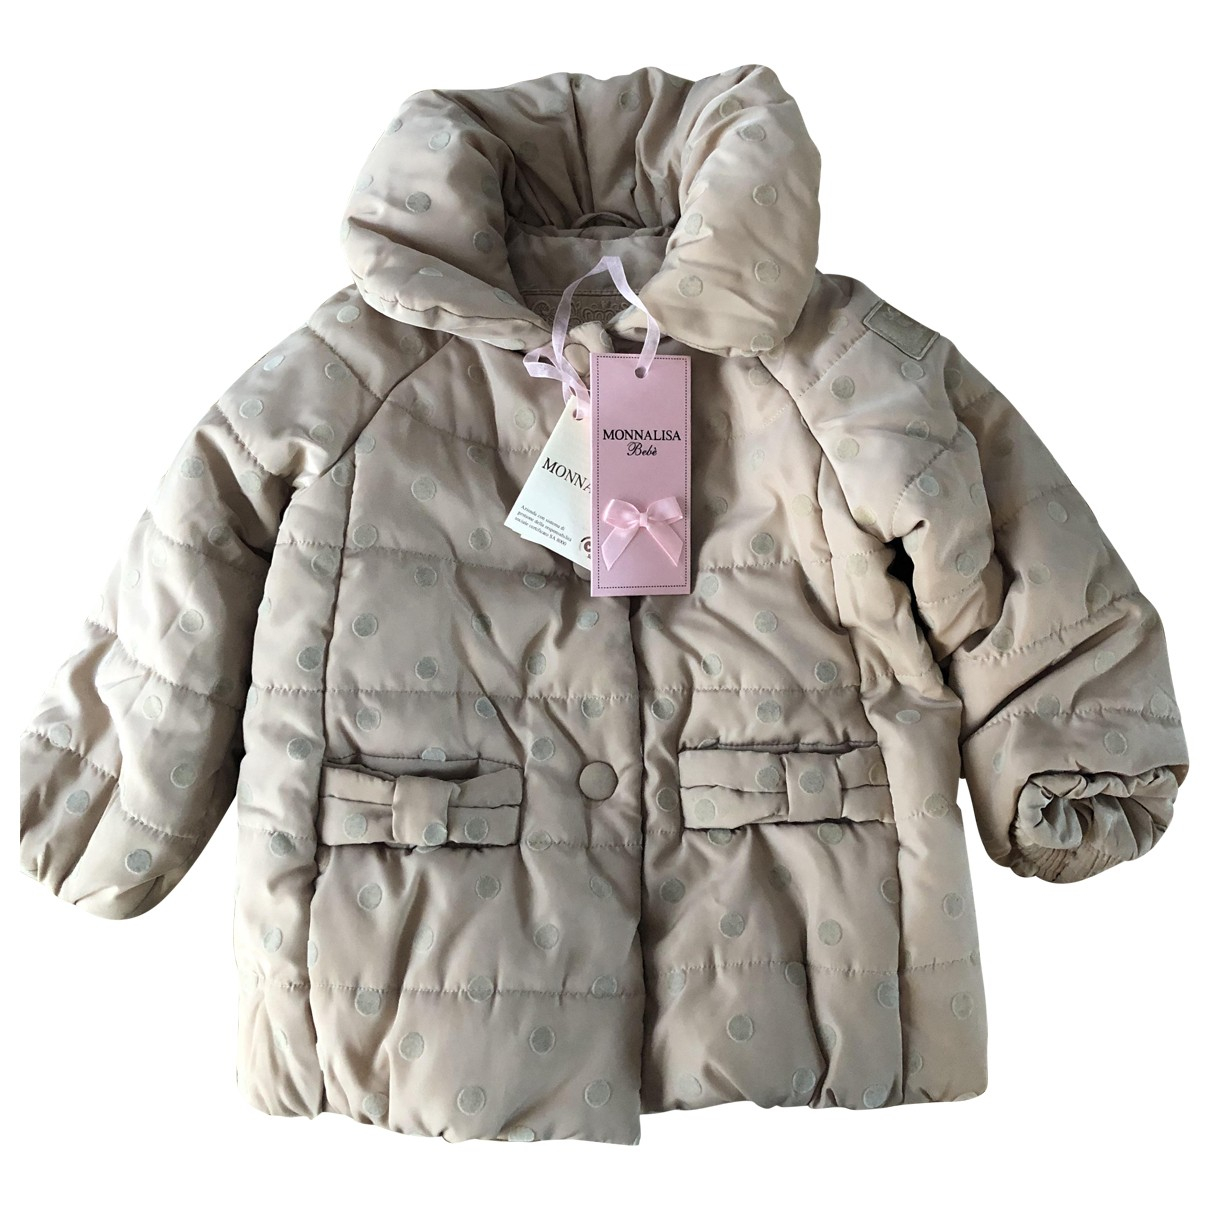 Monnalisa N Beige jacket & coat for Kids 12 months - up to 74cm FR